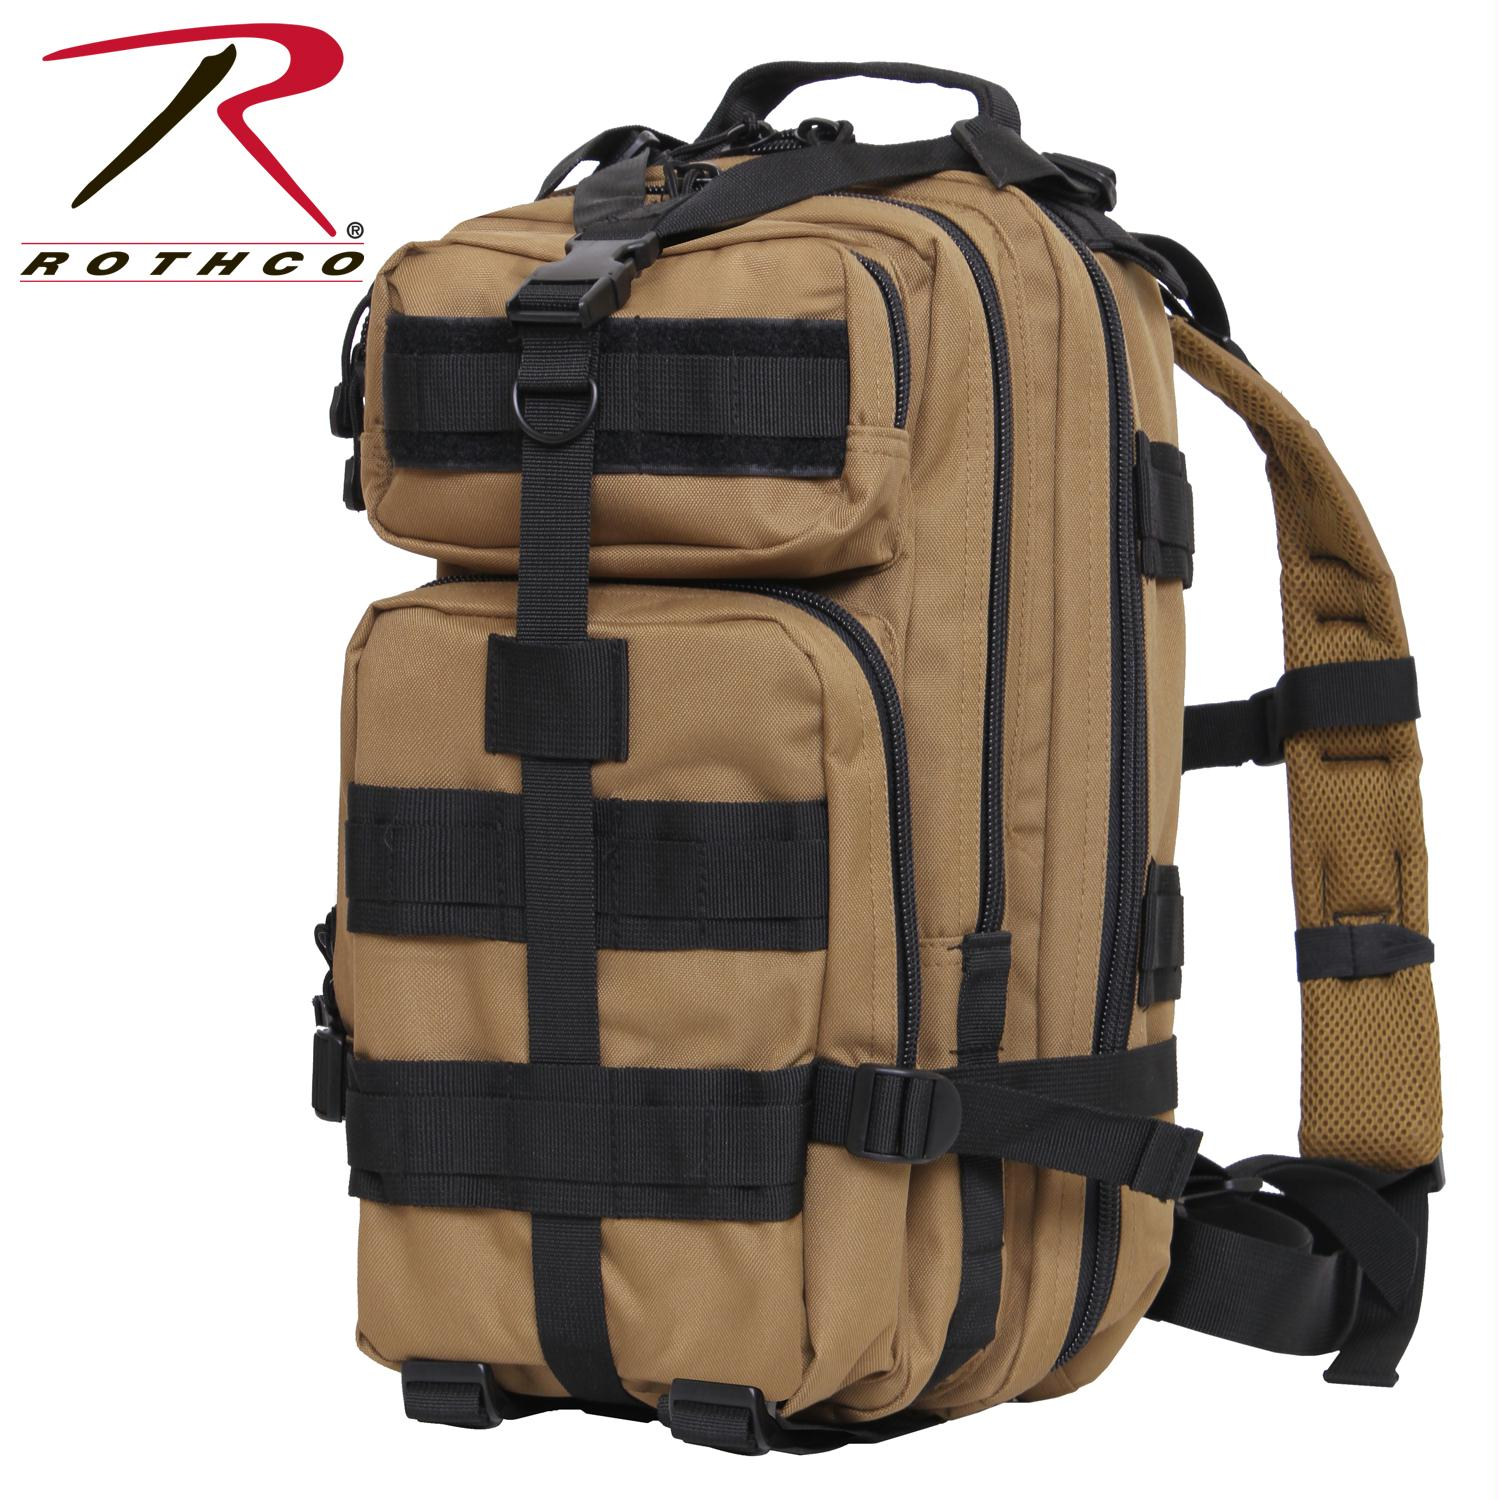 Rothco Medium Transport Pack - Coyote Brown/Black